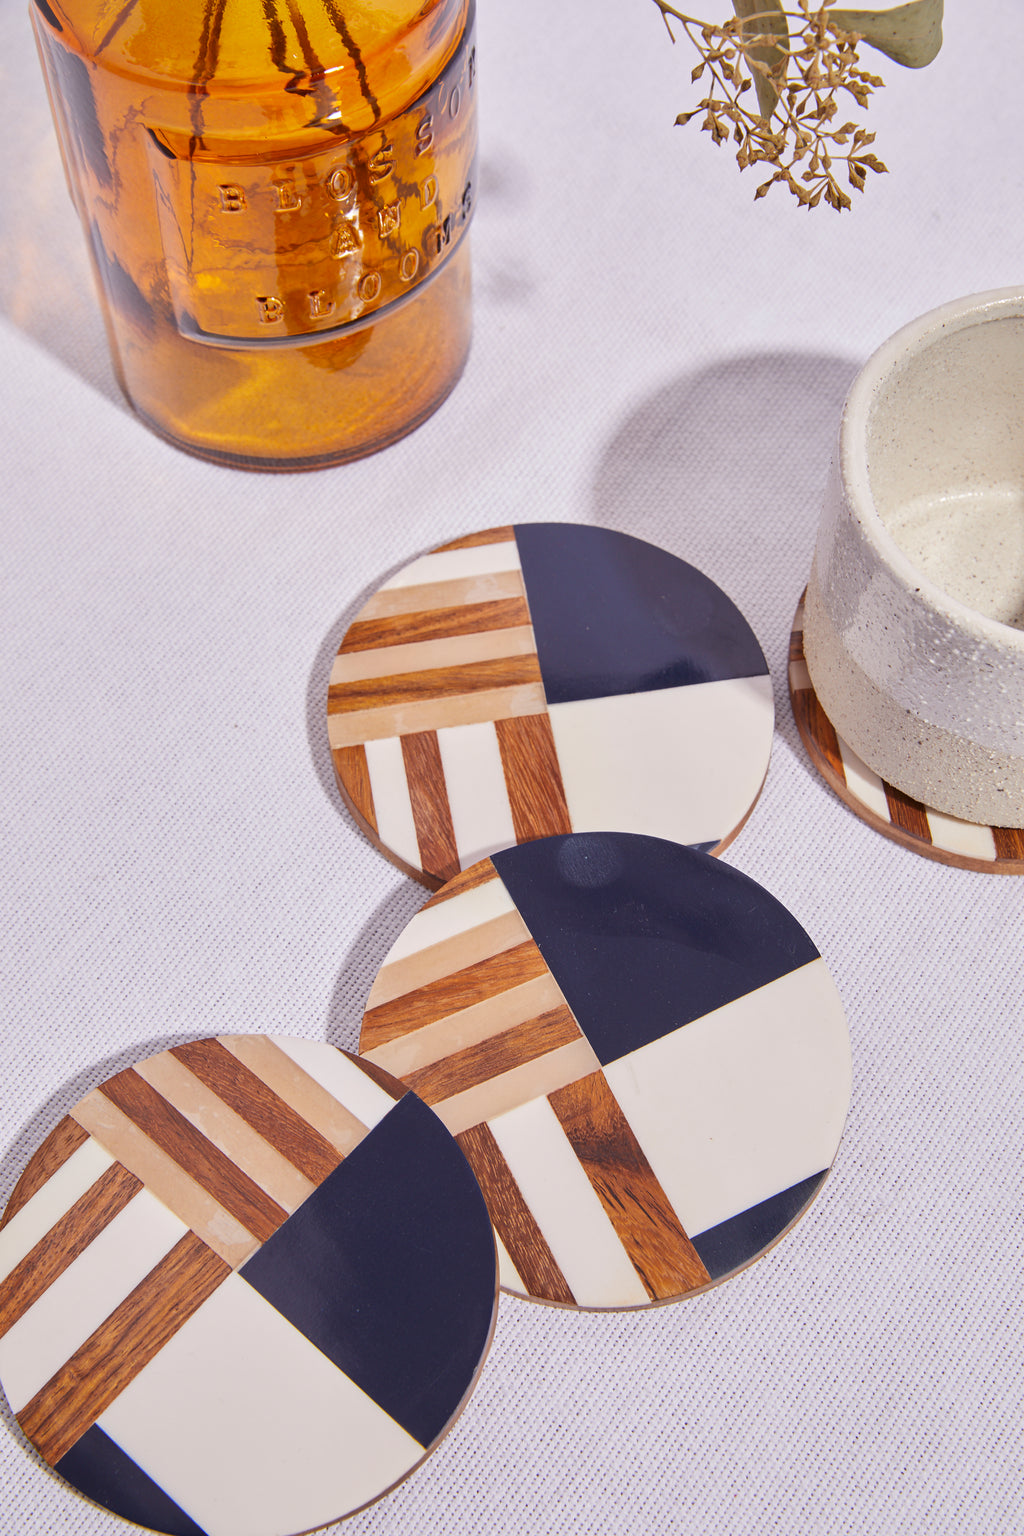 Round Resin and Wood Geometric Coasters - picnic-sf